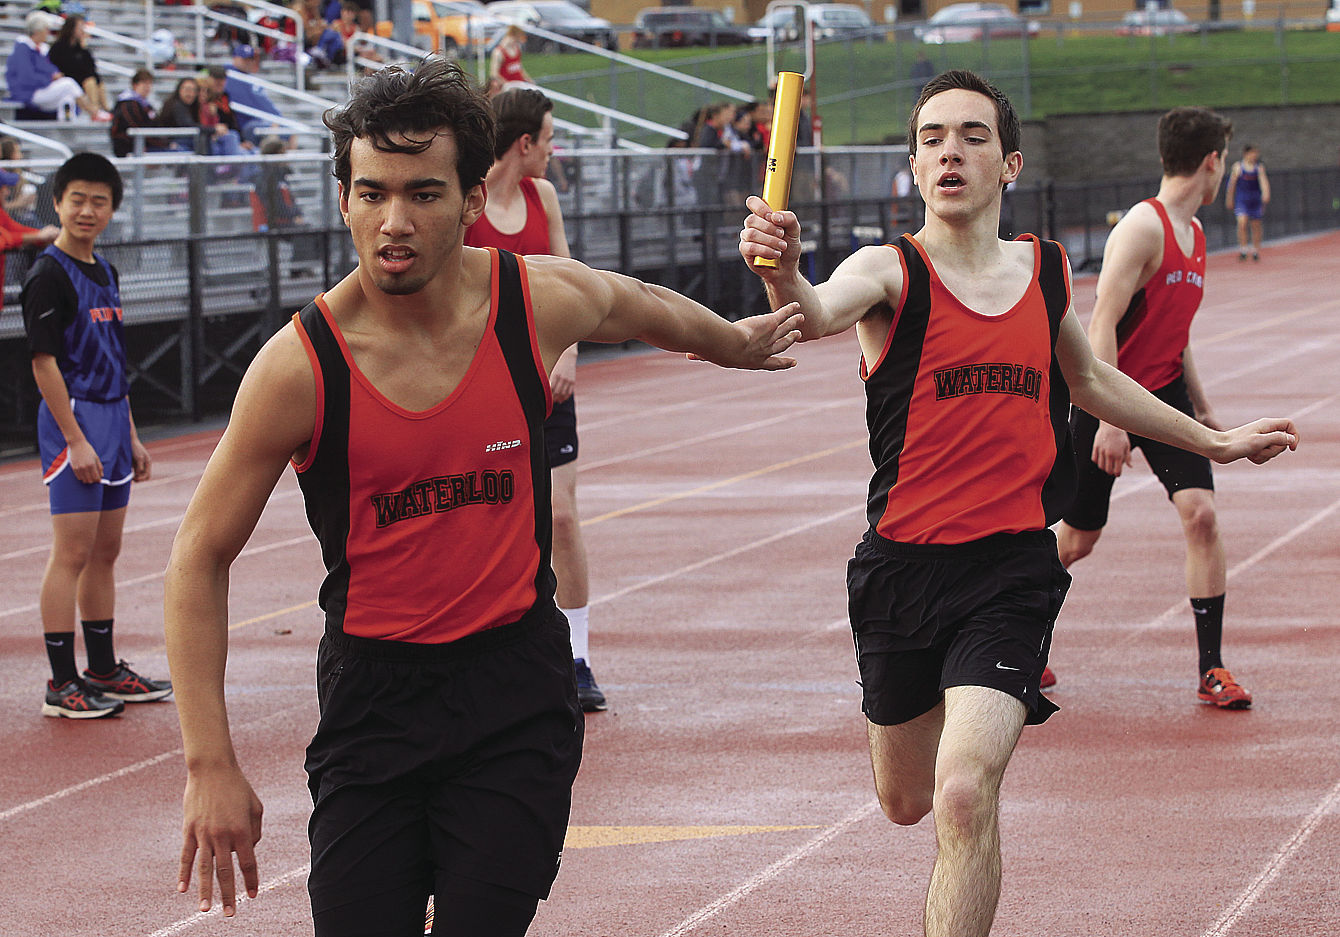 Strong day for local athletes at Penn Yan track and field meet